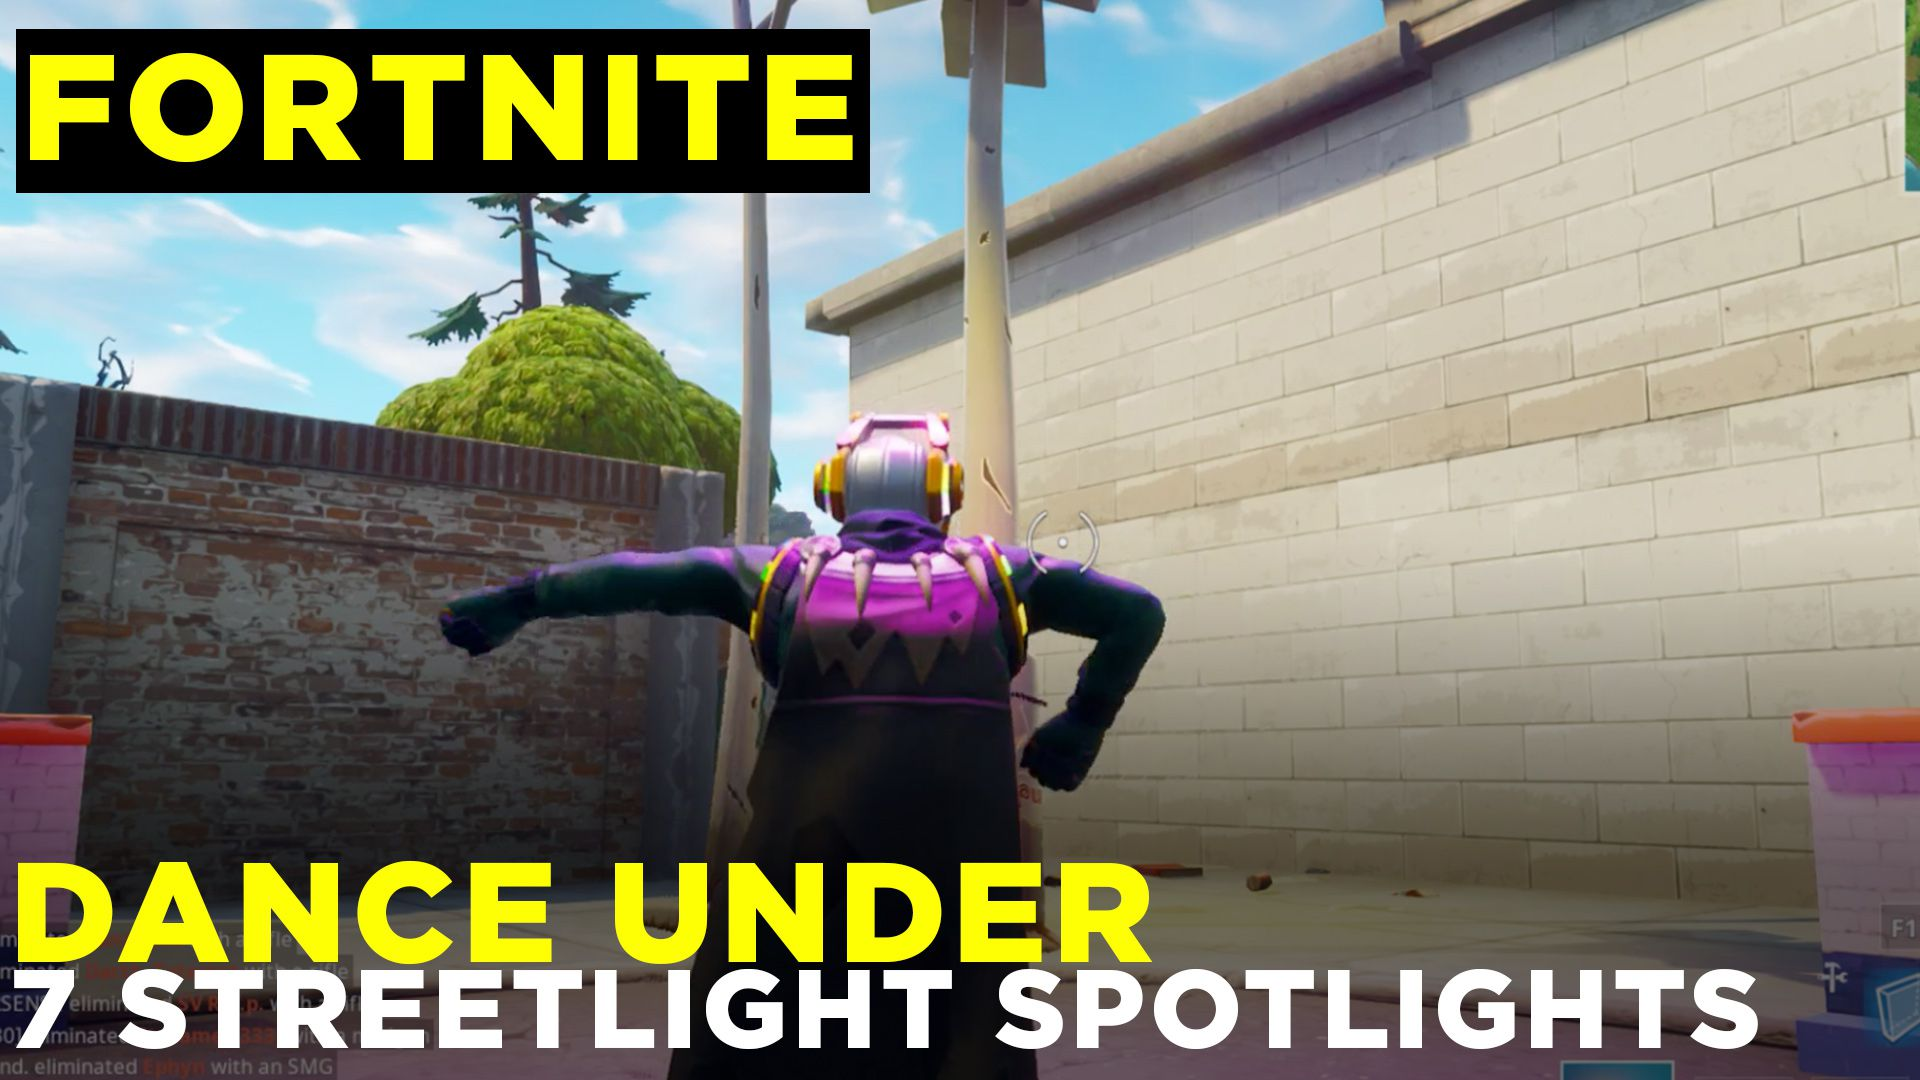 fortnite street spotlights location